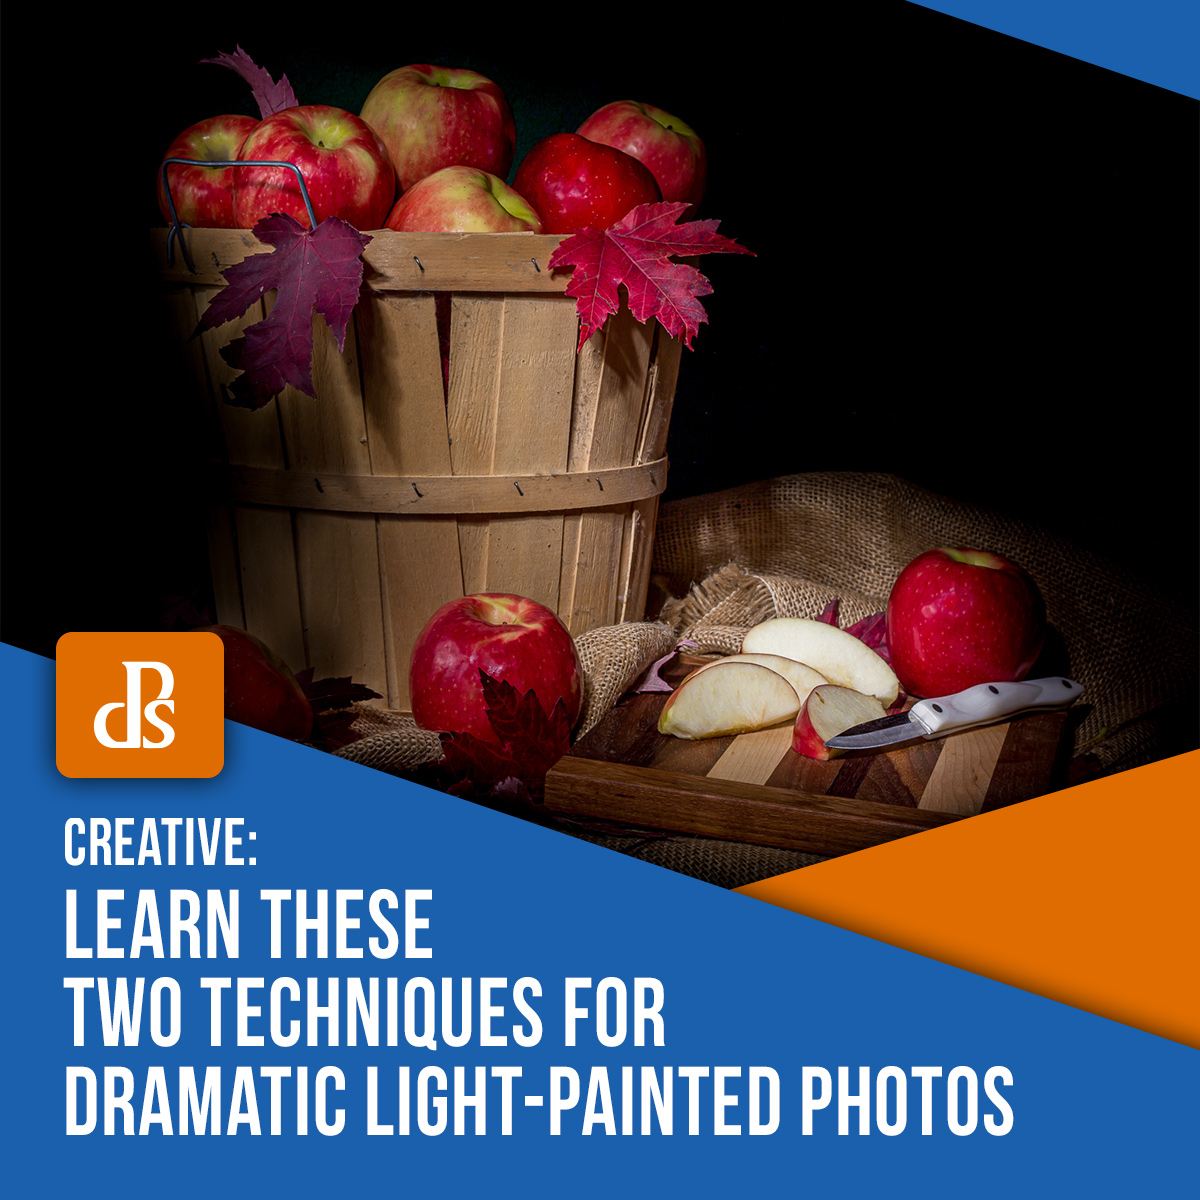 Learn these Two Techniques for Dramatic Light-Painted Photos